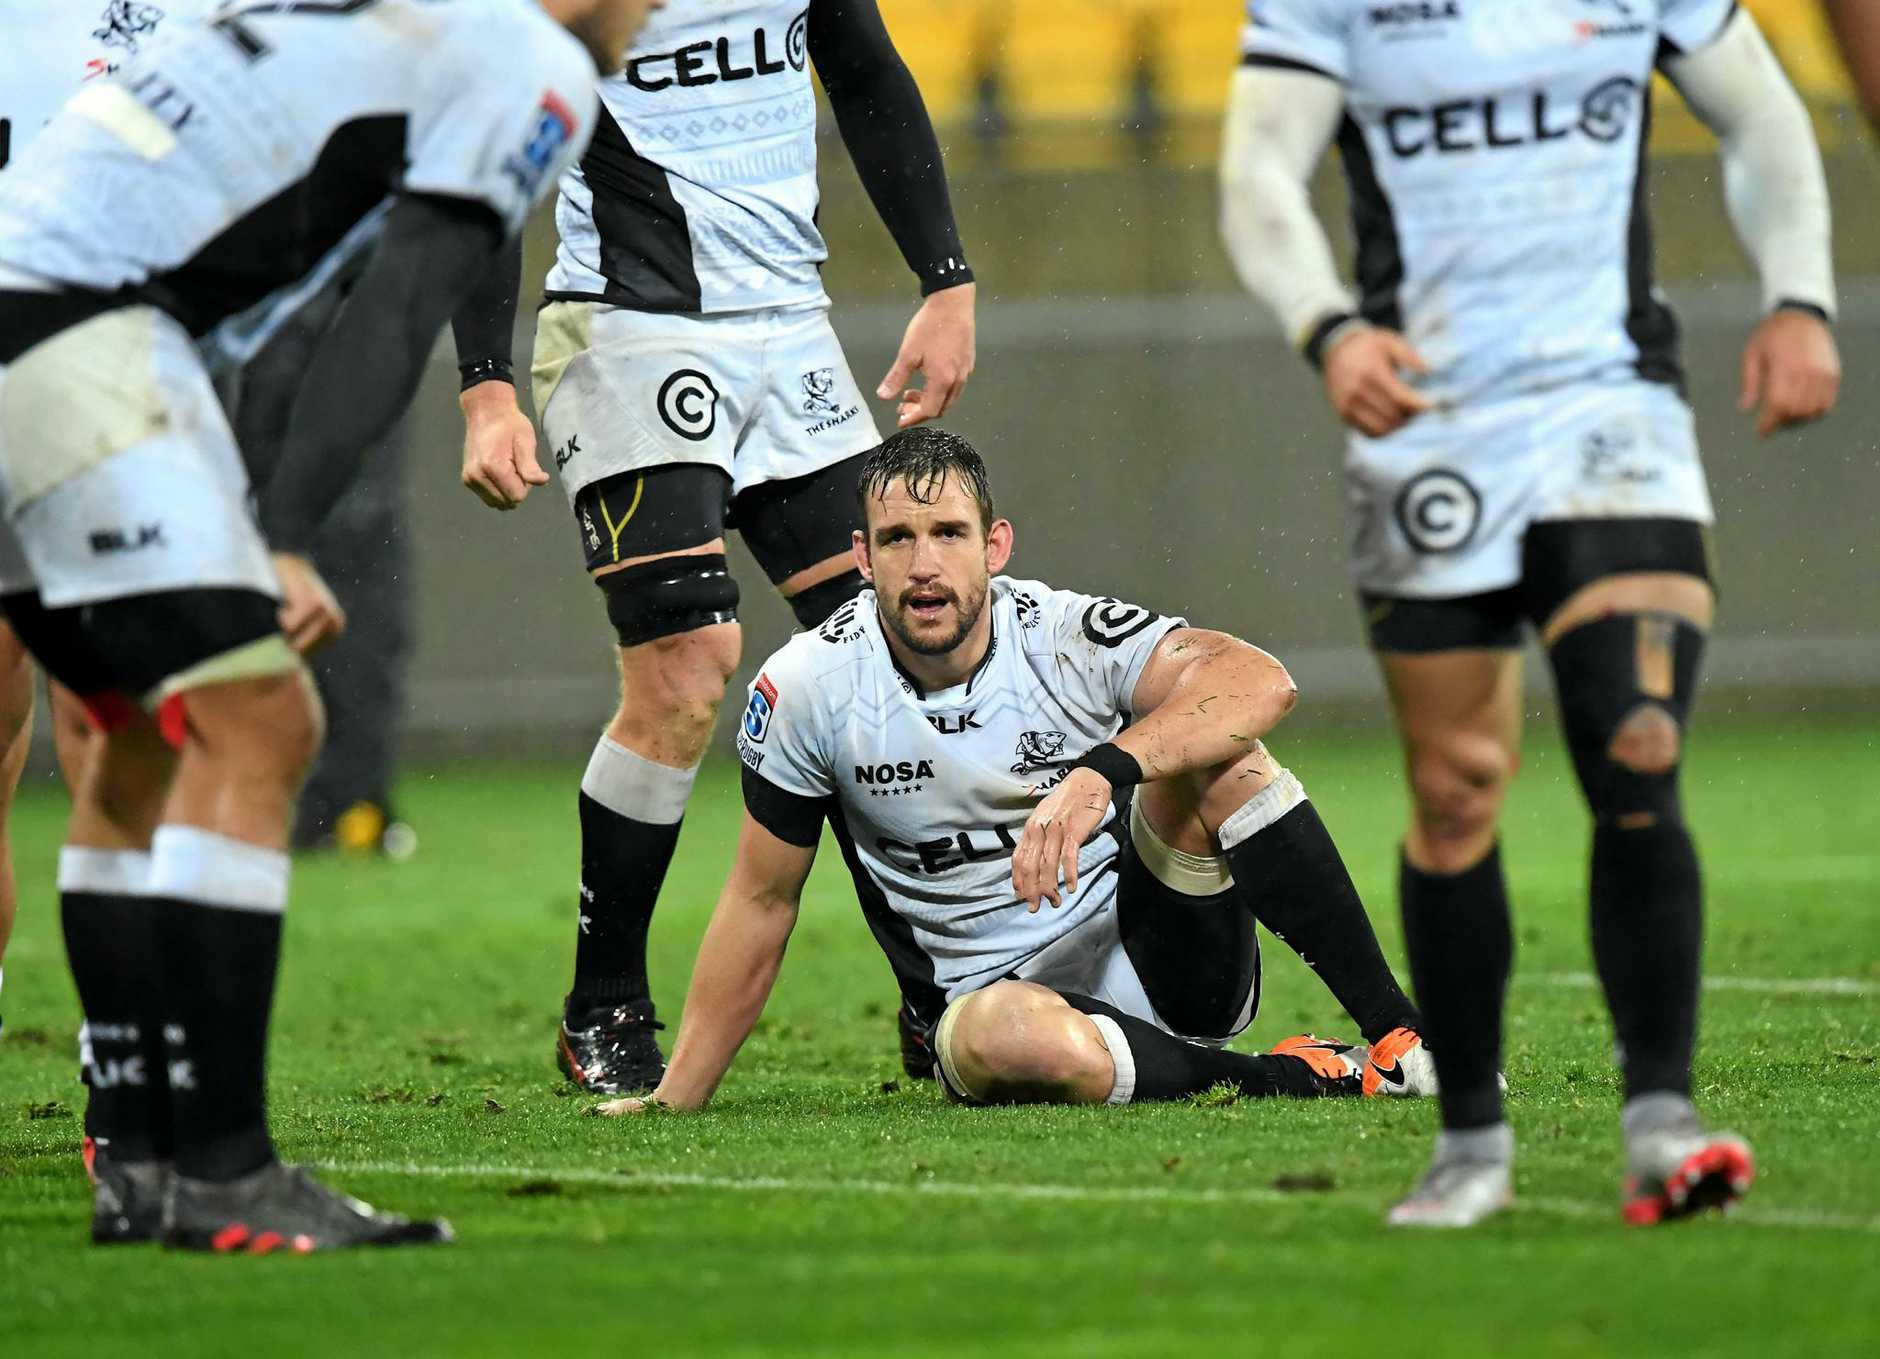 Sharks players after the quarter-final loss to the Hurricanes at Westpac Stadium in July.